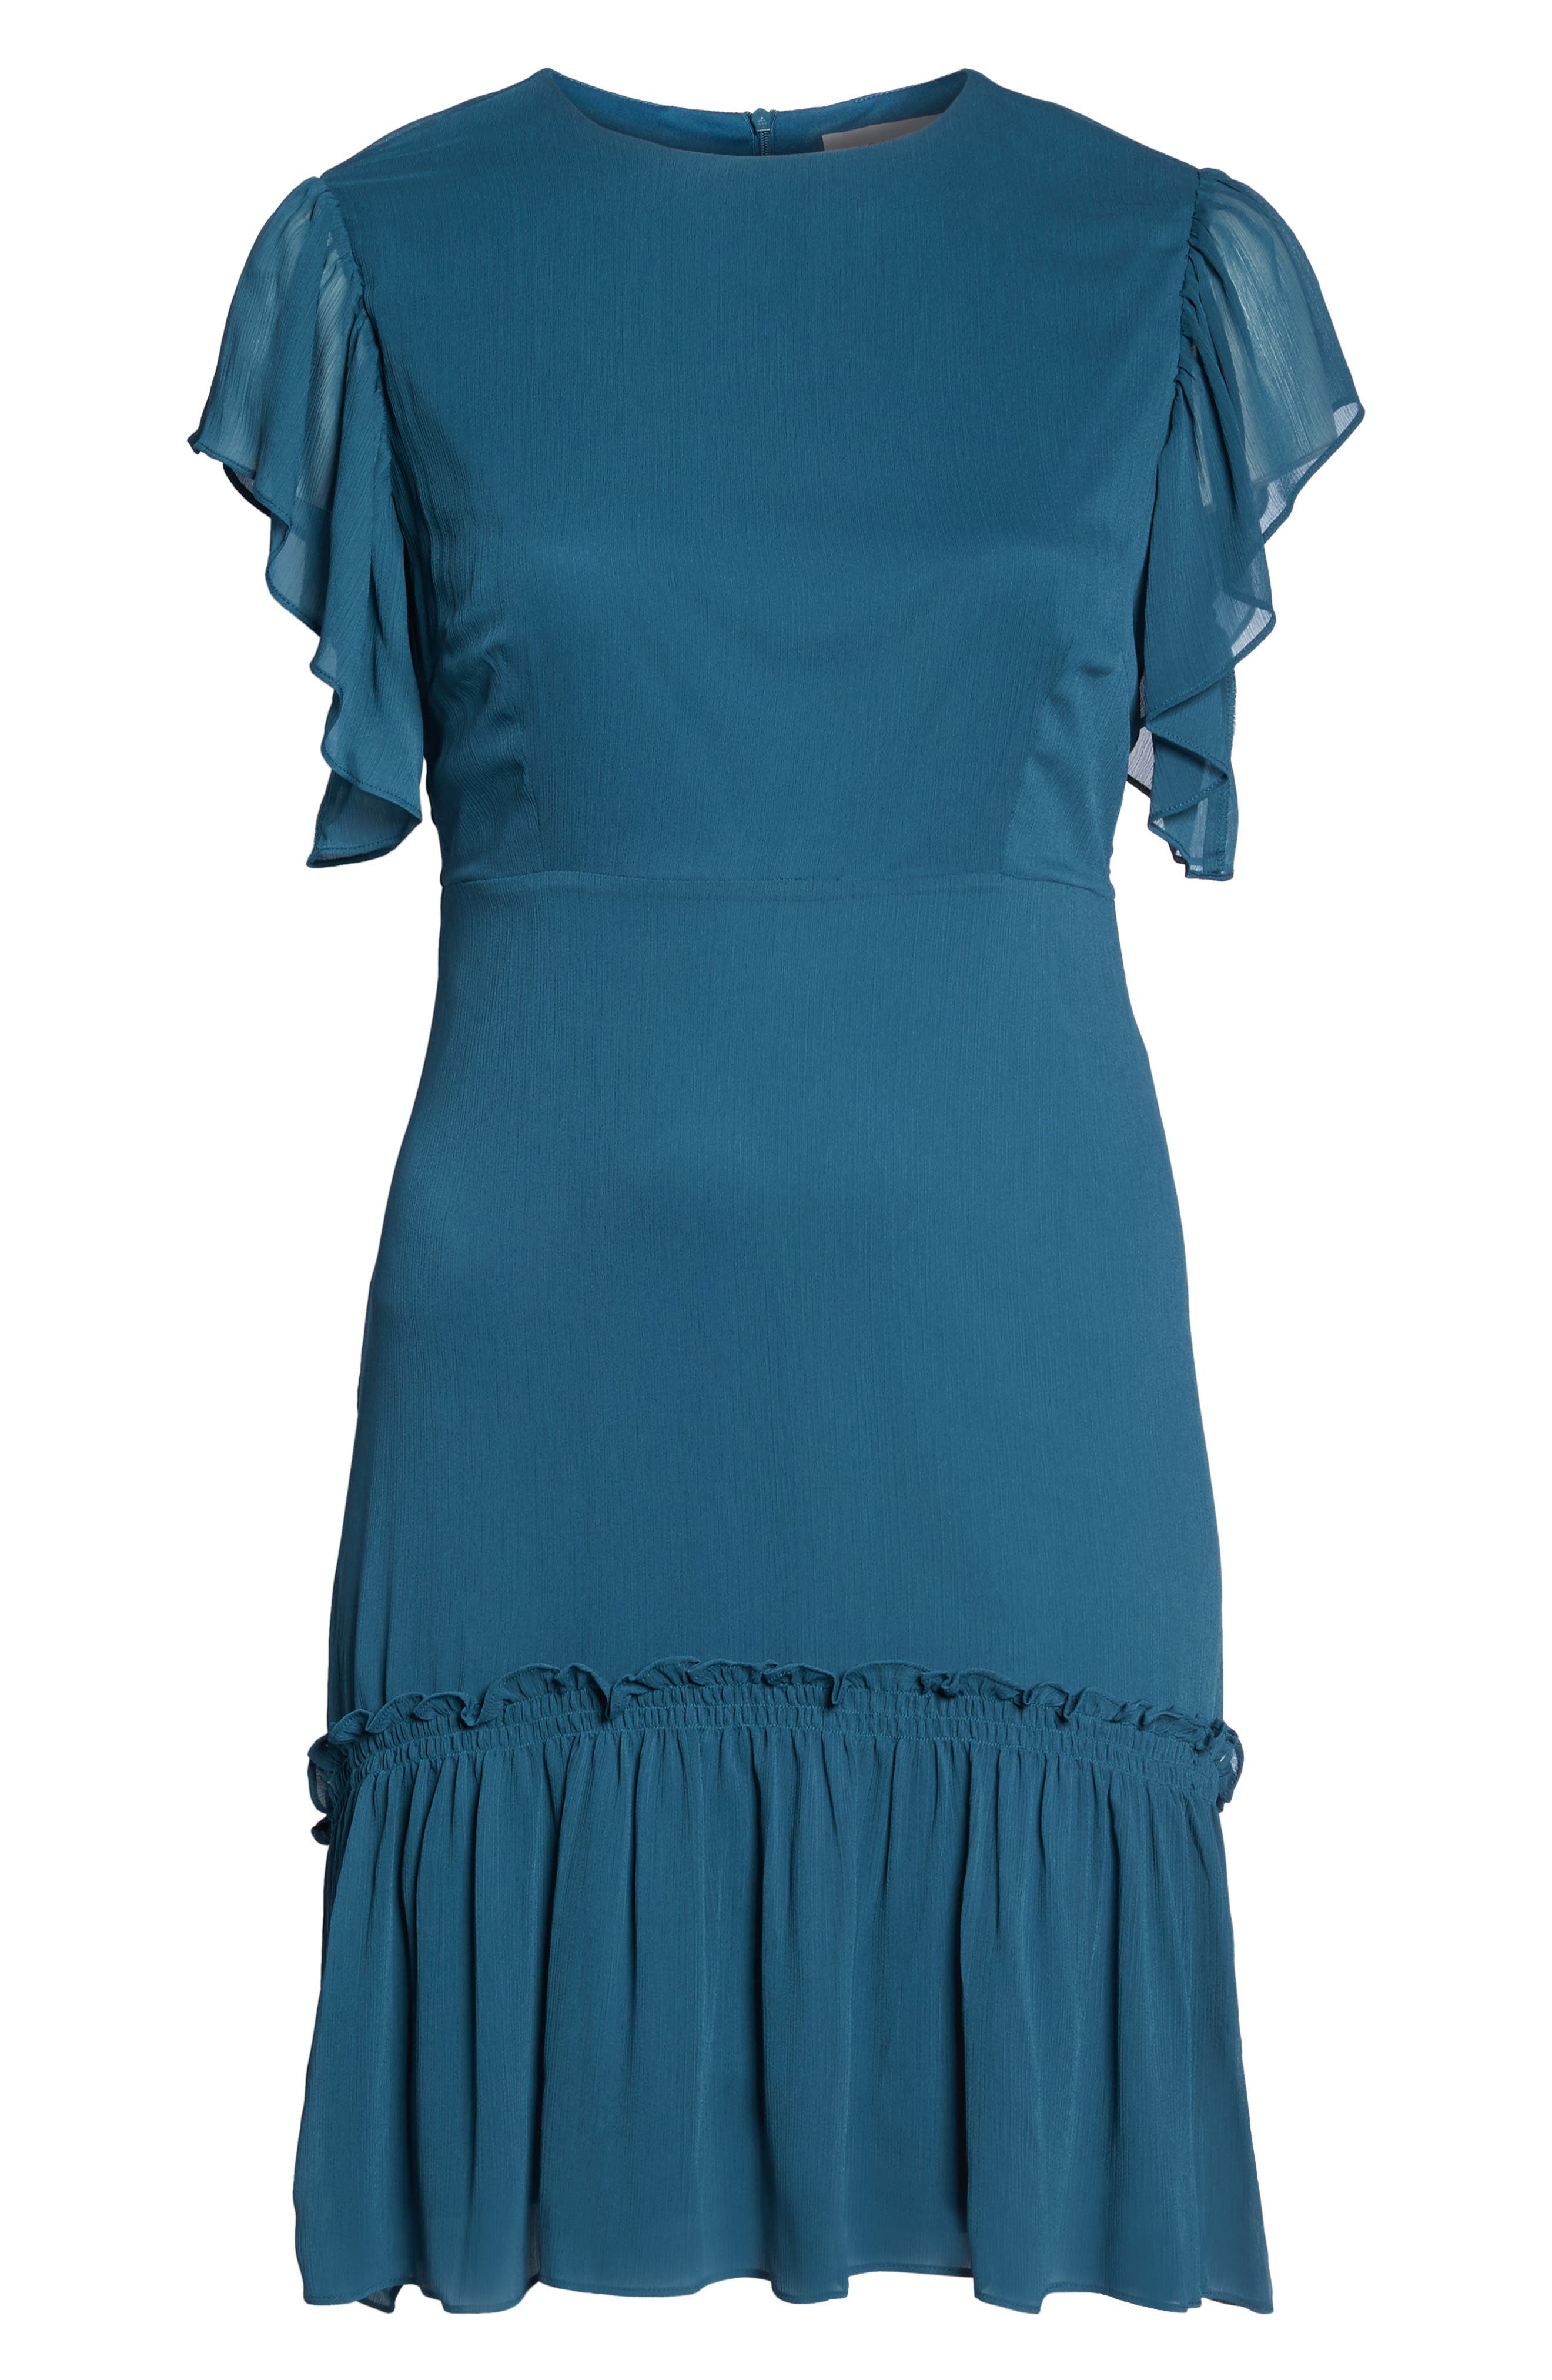 Ruffled High/Low A-Line Dress,                             Alternate thumbnail 6, color,                             300